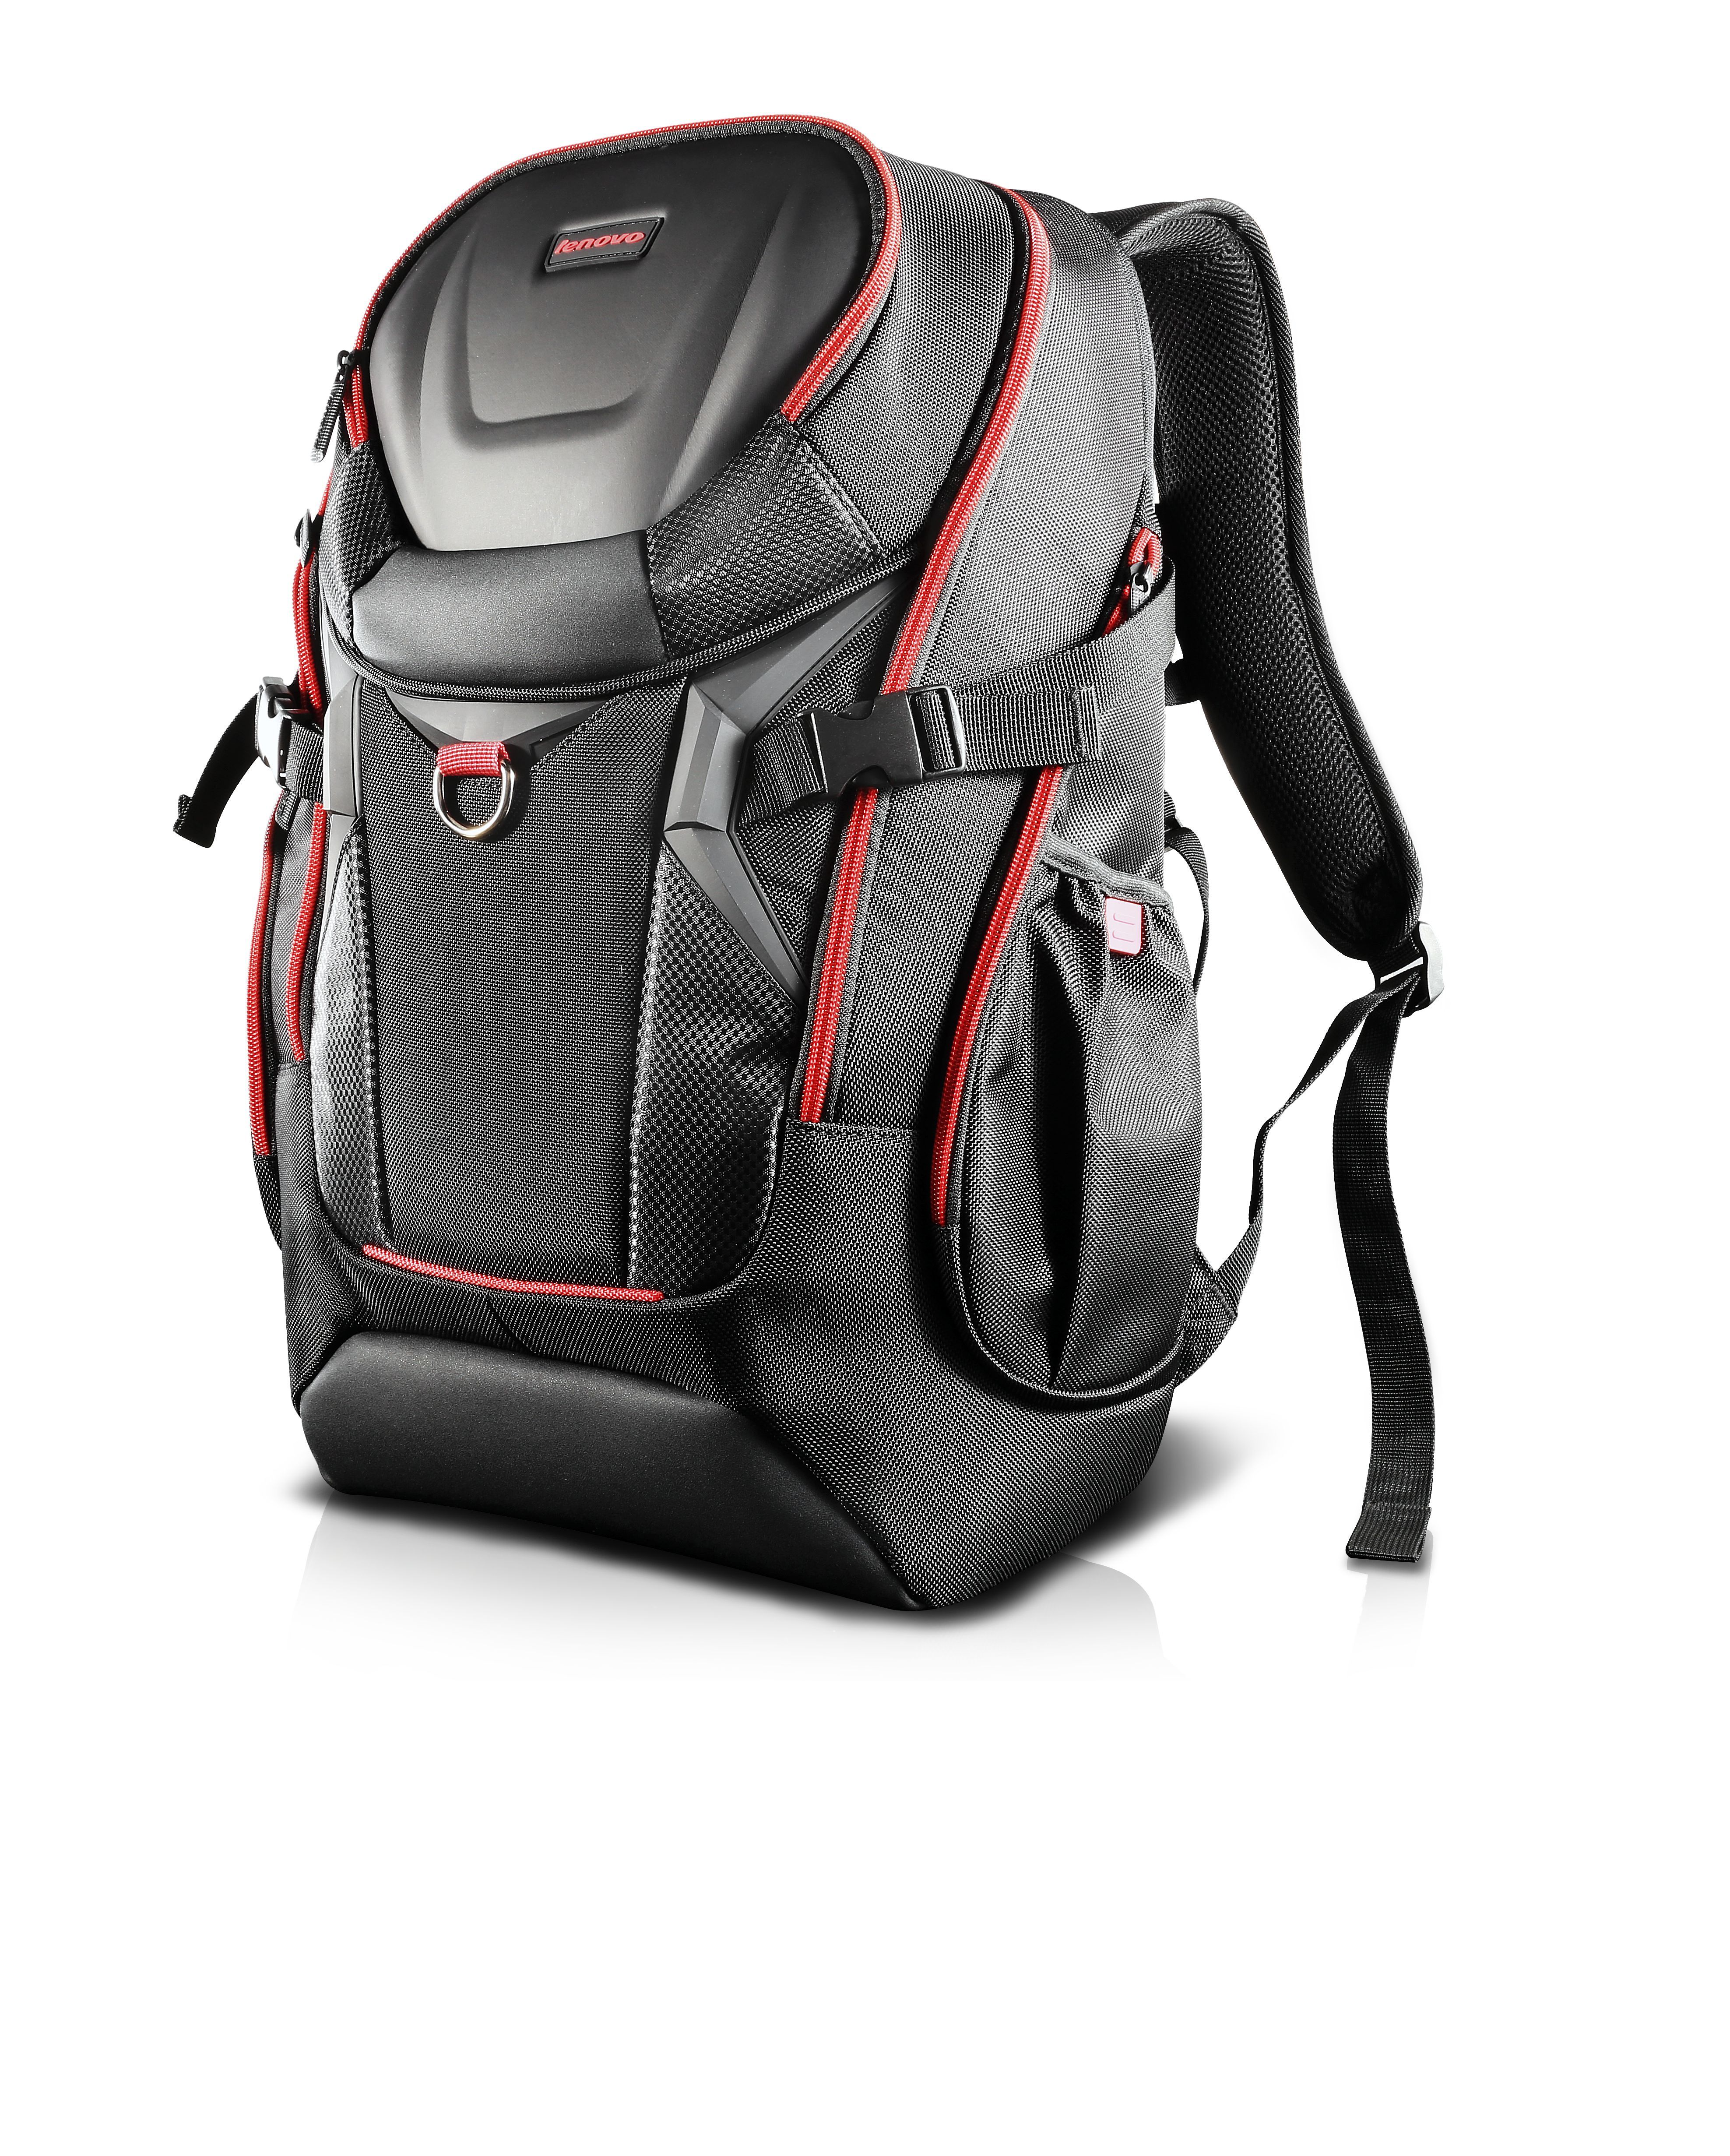 For the gamer on the go the lenovo y gaming active